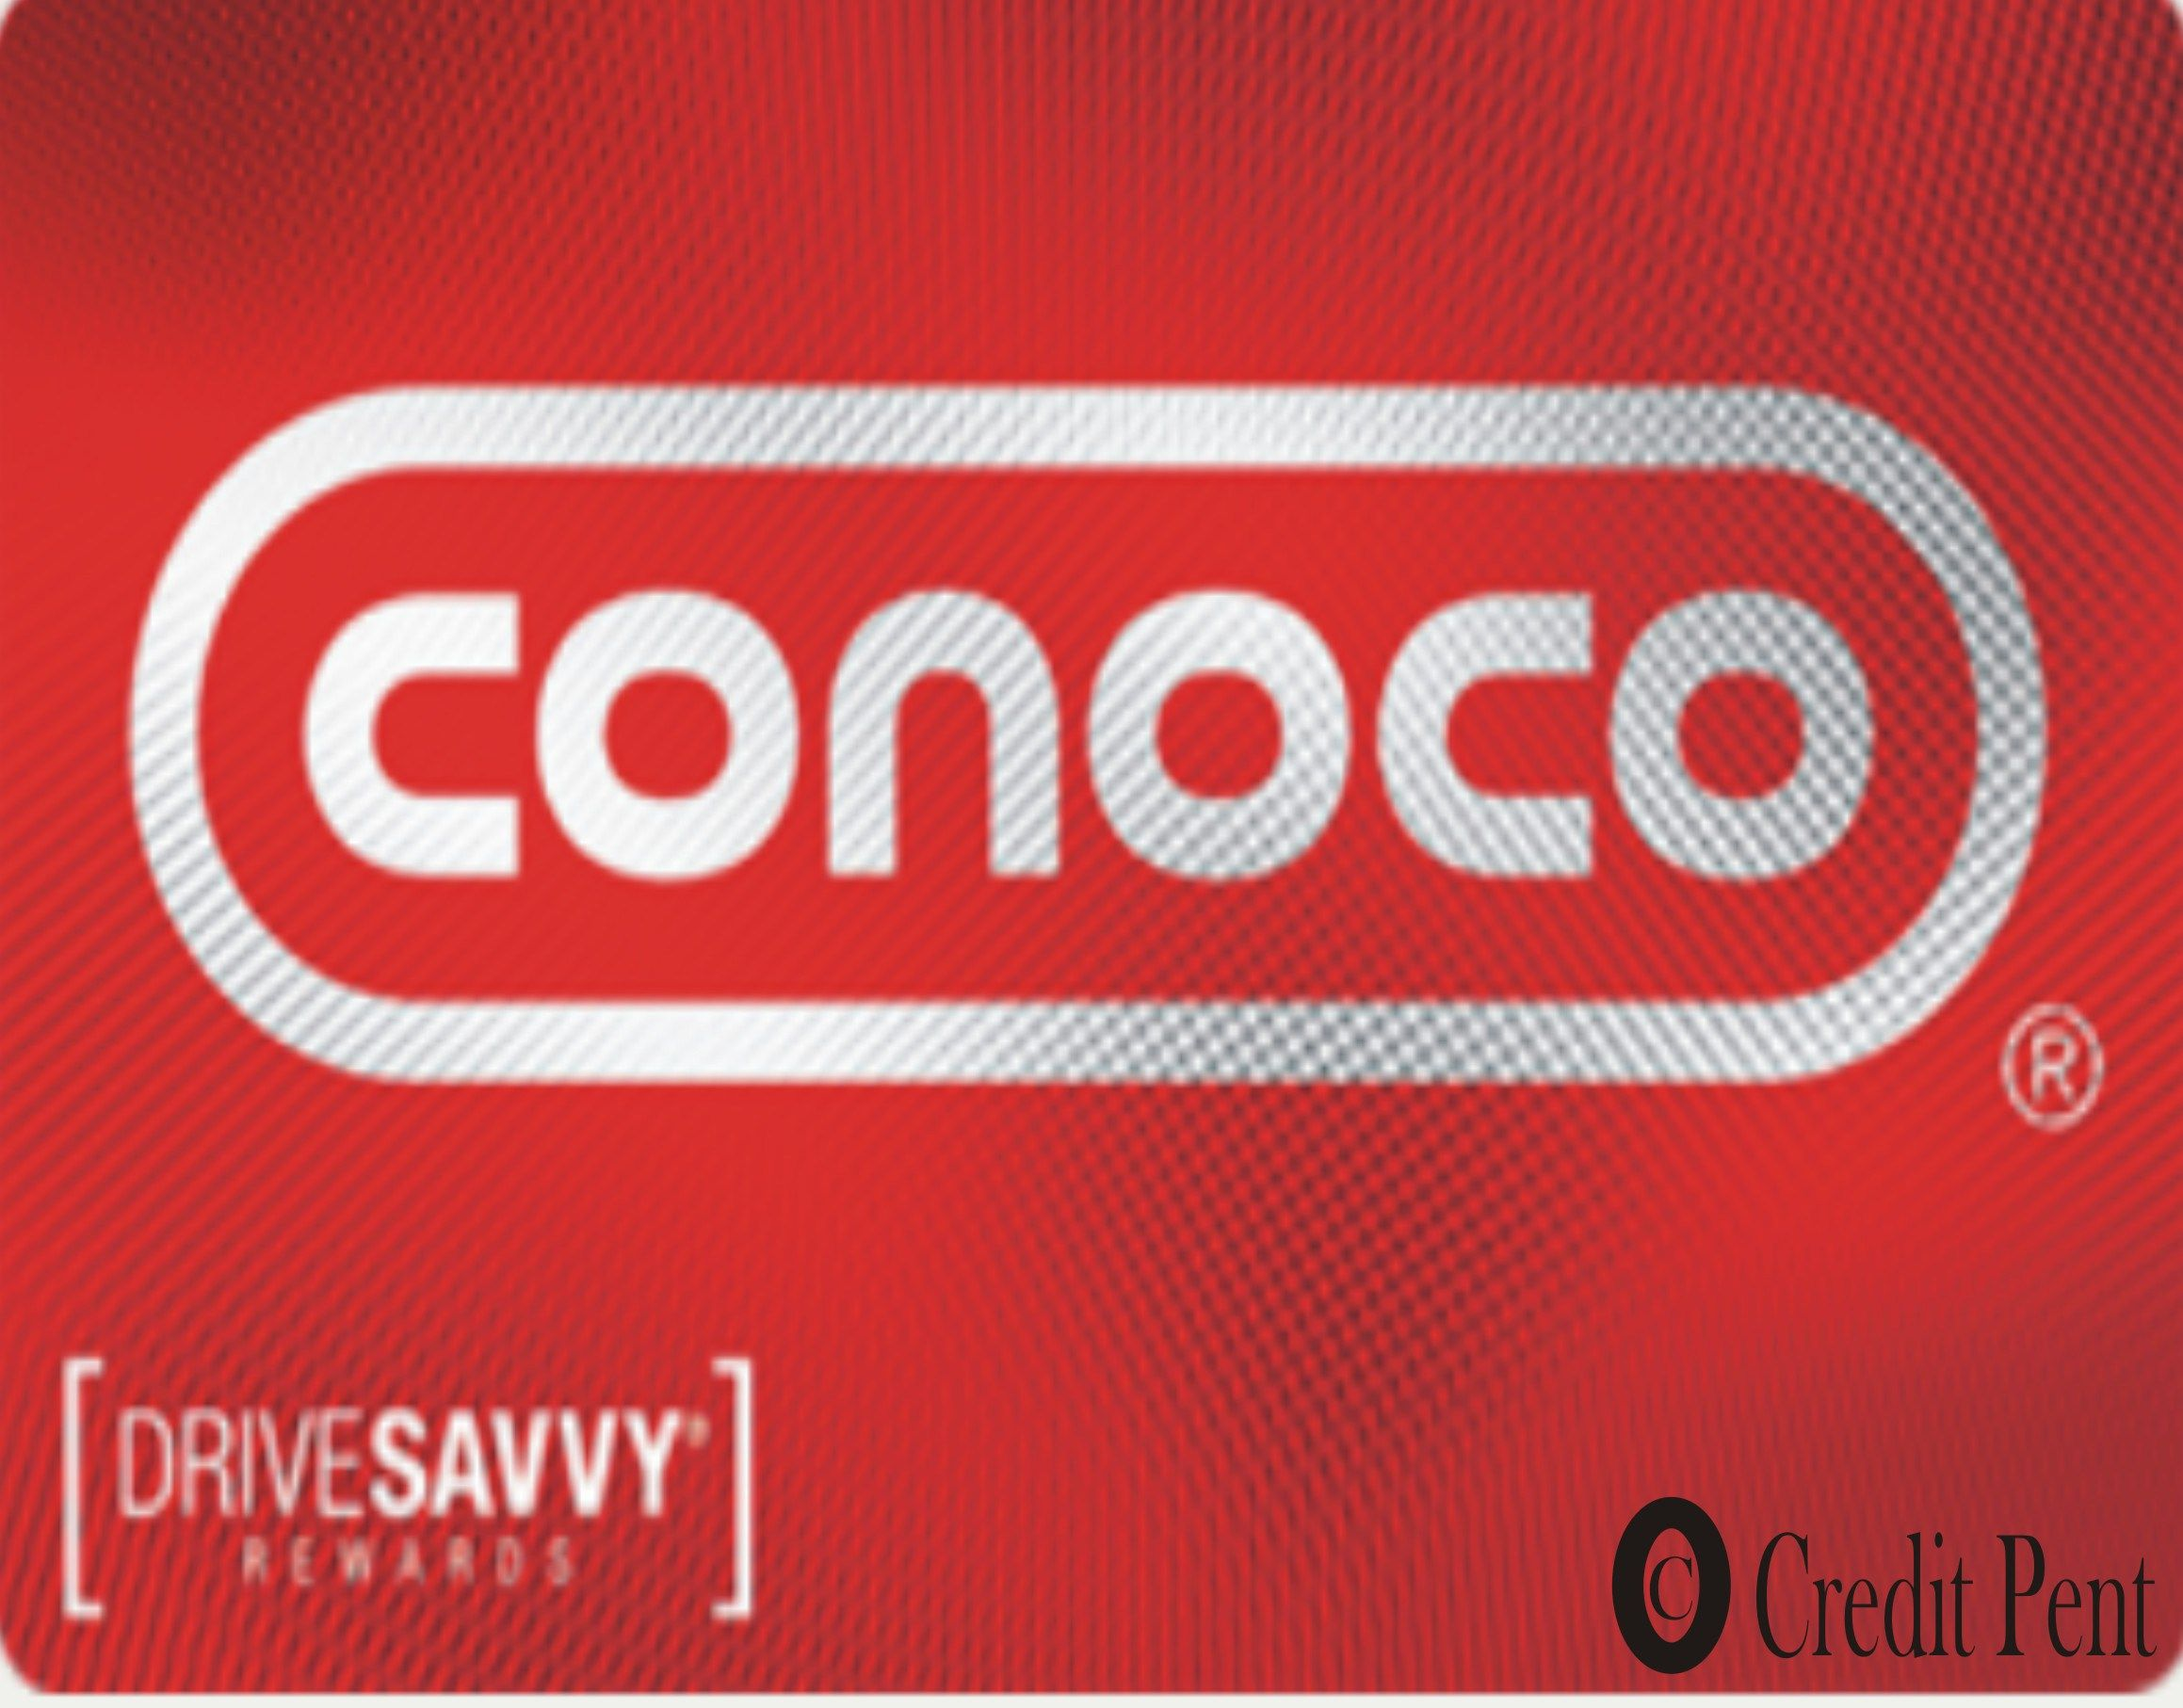 Conoco Credit Card Online Login | Payment, Benefits, Account